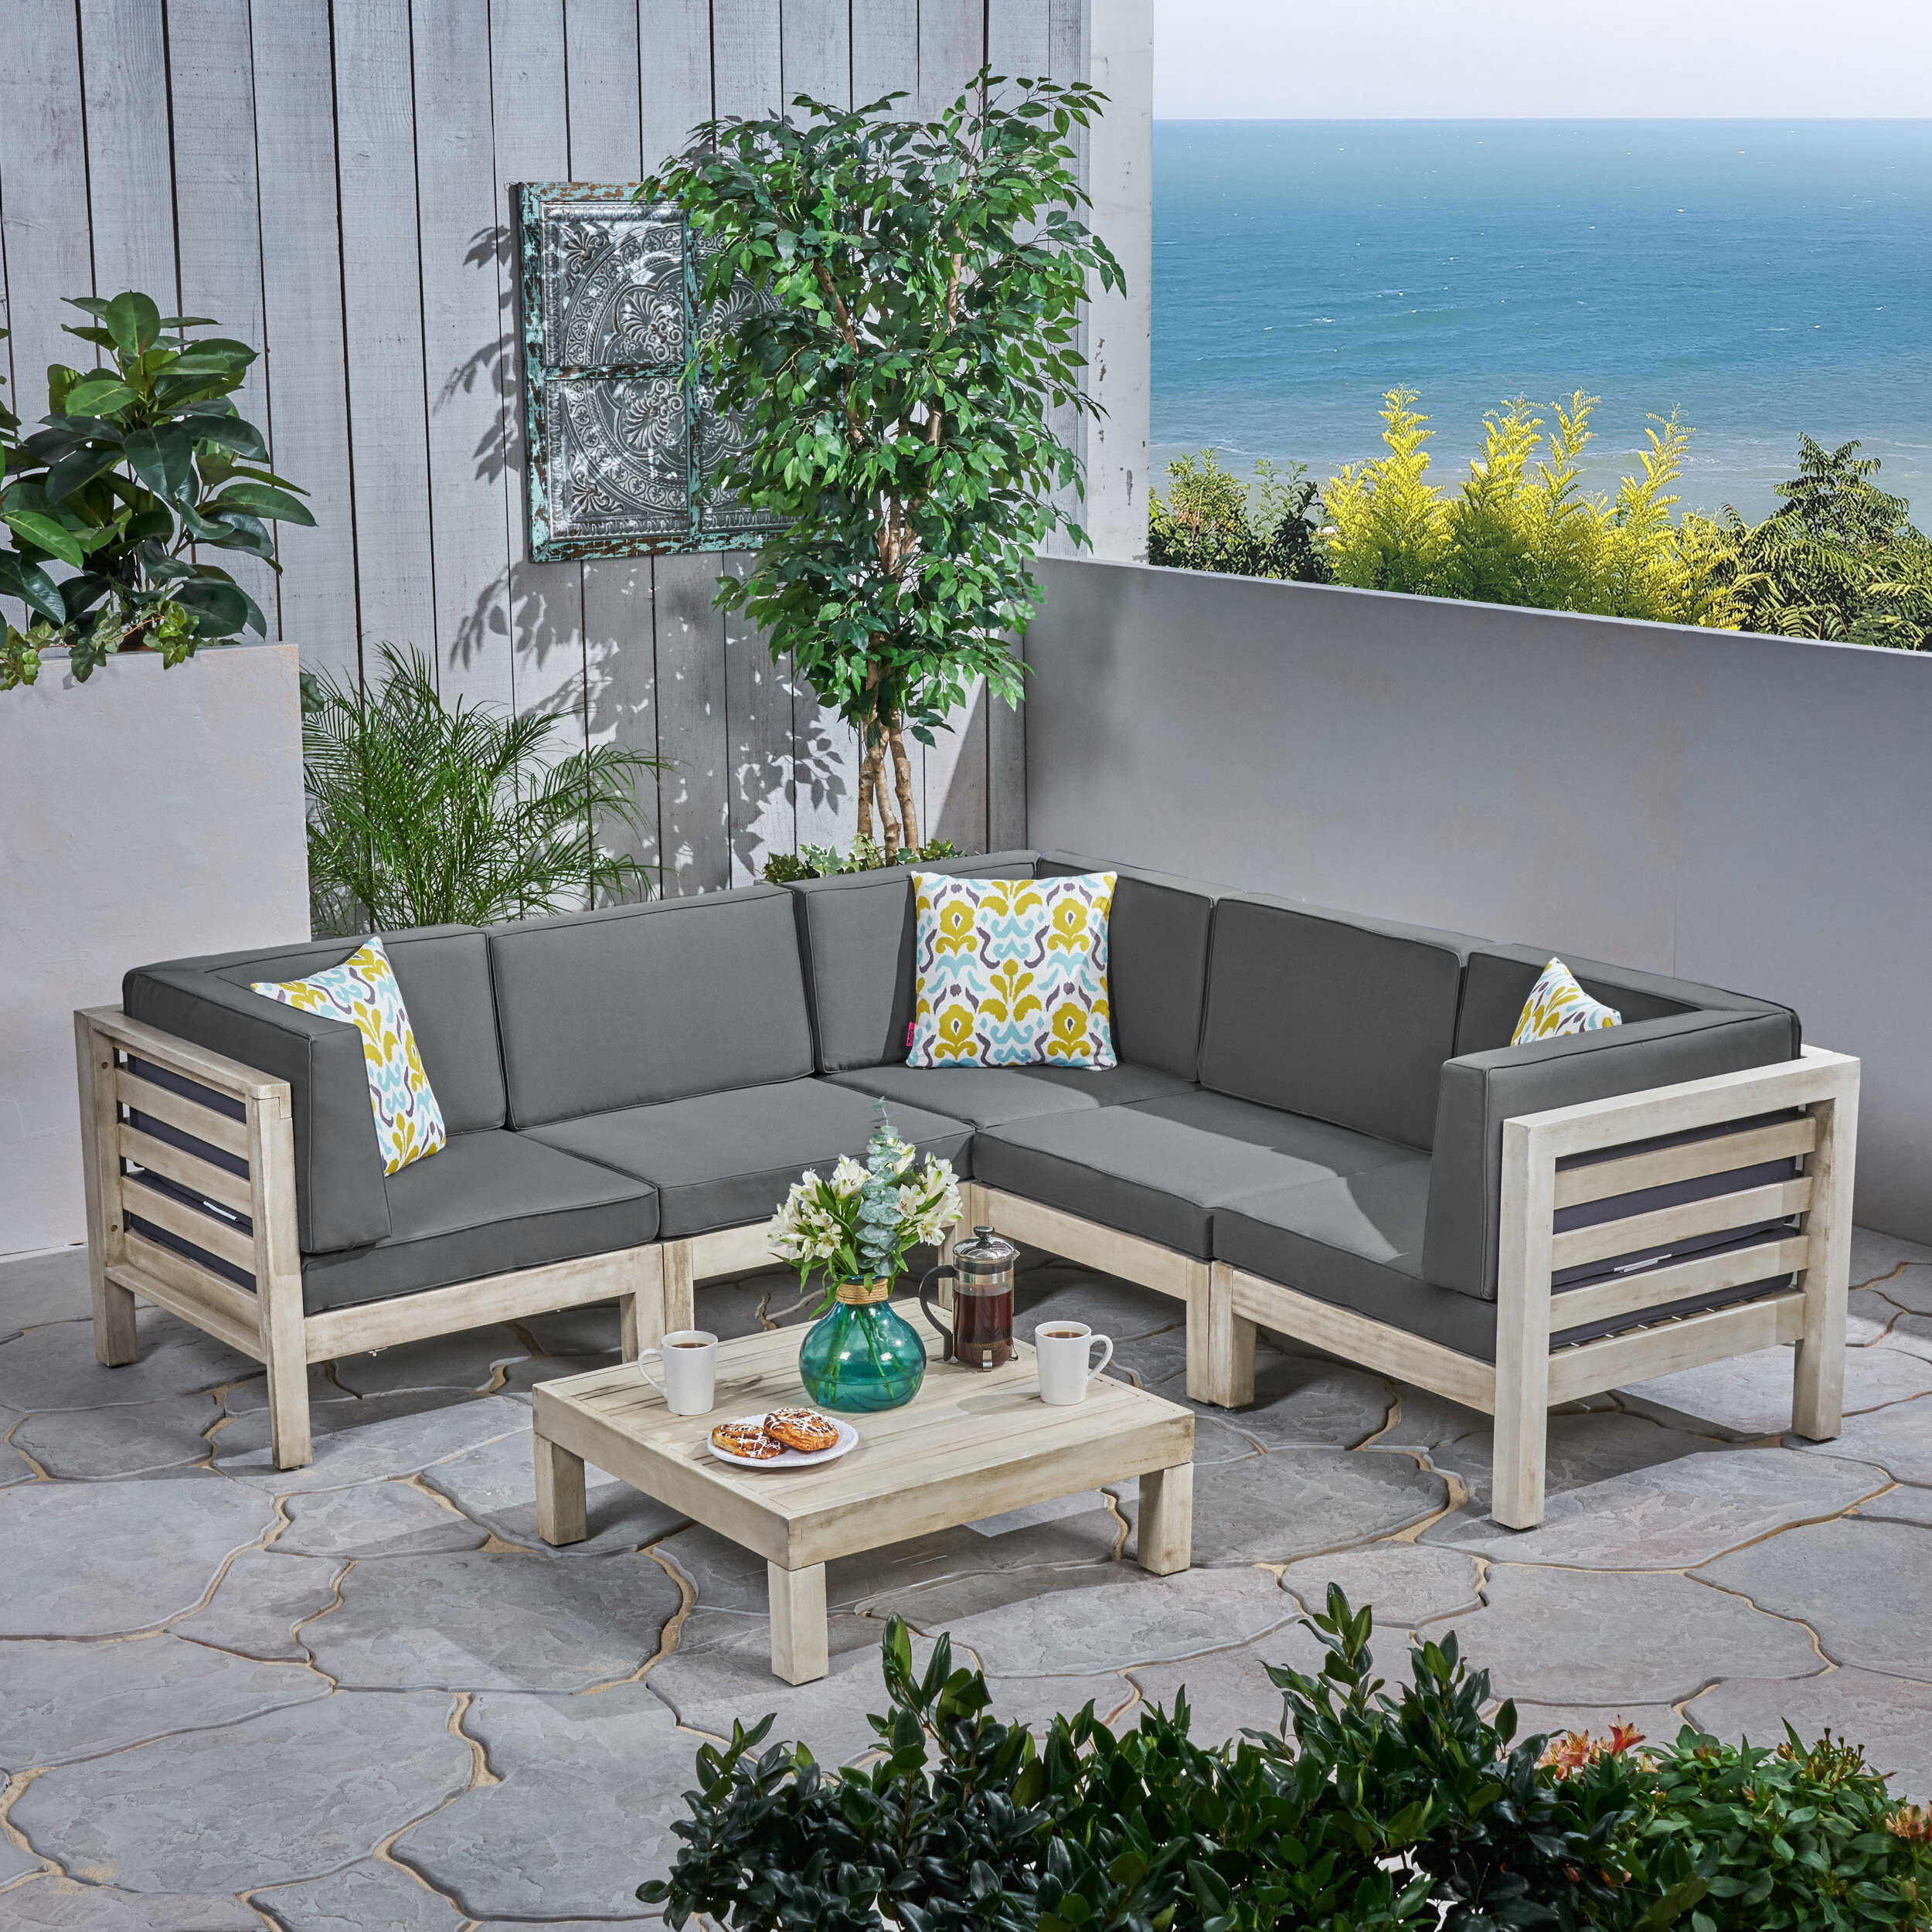 Recent Brayden Studio Seaham 6 Piece Sectional Seating Group With For Seaham Patio Sectionals With Cushions (View 10 of 20)